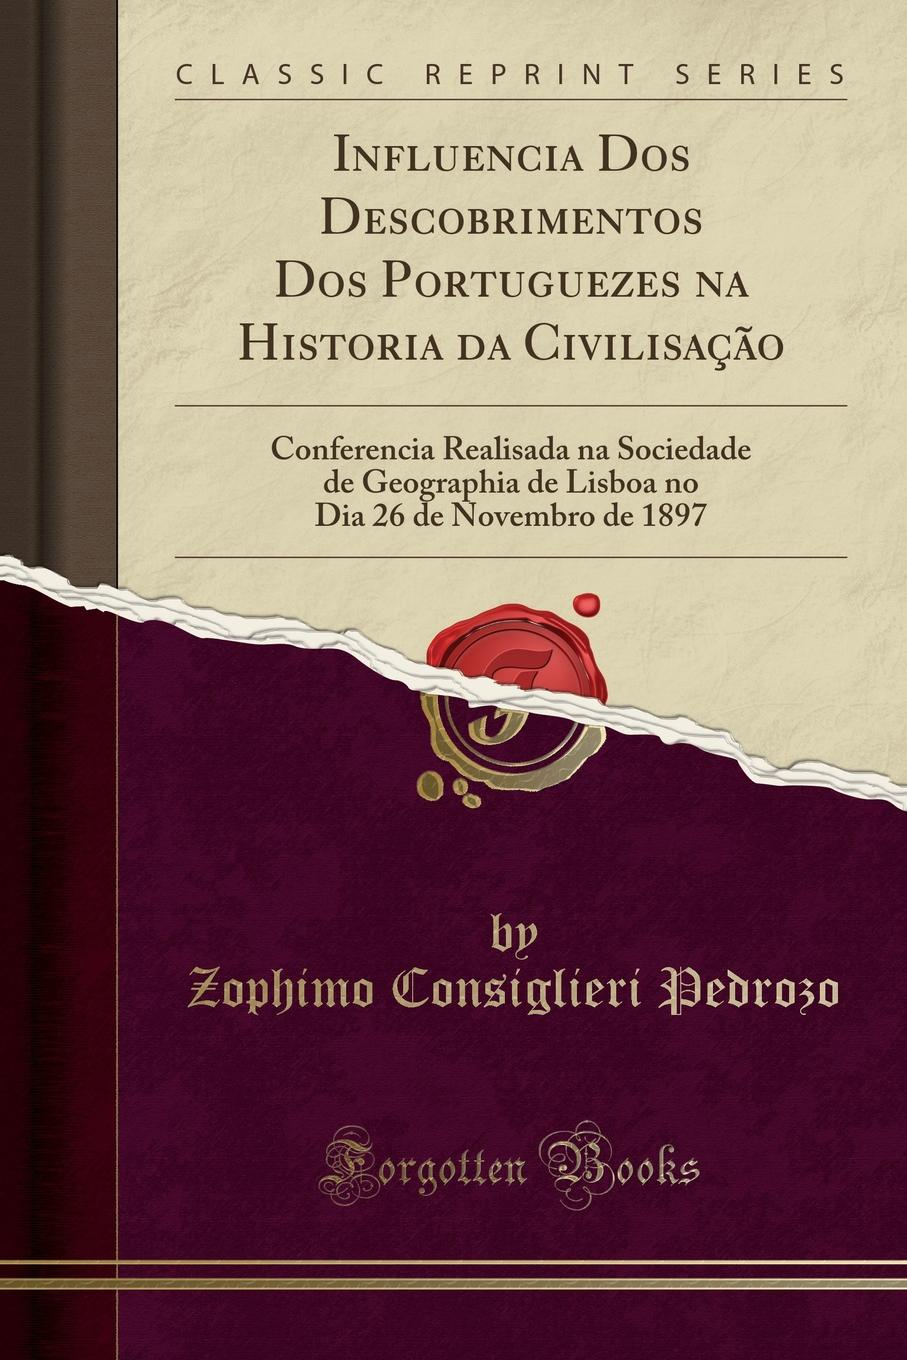 Zophimo Consiglieri Pedrozo Influencia Dos Descobrimentos Dos Portuguezes na Historia da Civilisacao. Conferencia Realisada na Sociedade de Geographia de Lisboa no Dia 26 de Novembro de 1897 (Classic Reprint) a questao do transvaal documentos collegidos tradusidos e communicados a sociedade de geographia de lisboa em 24 feveiro de 1881 portuguese edition